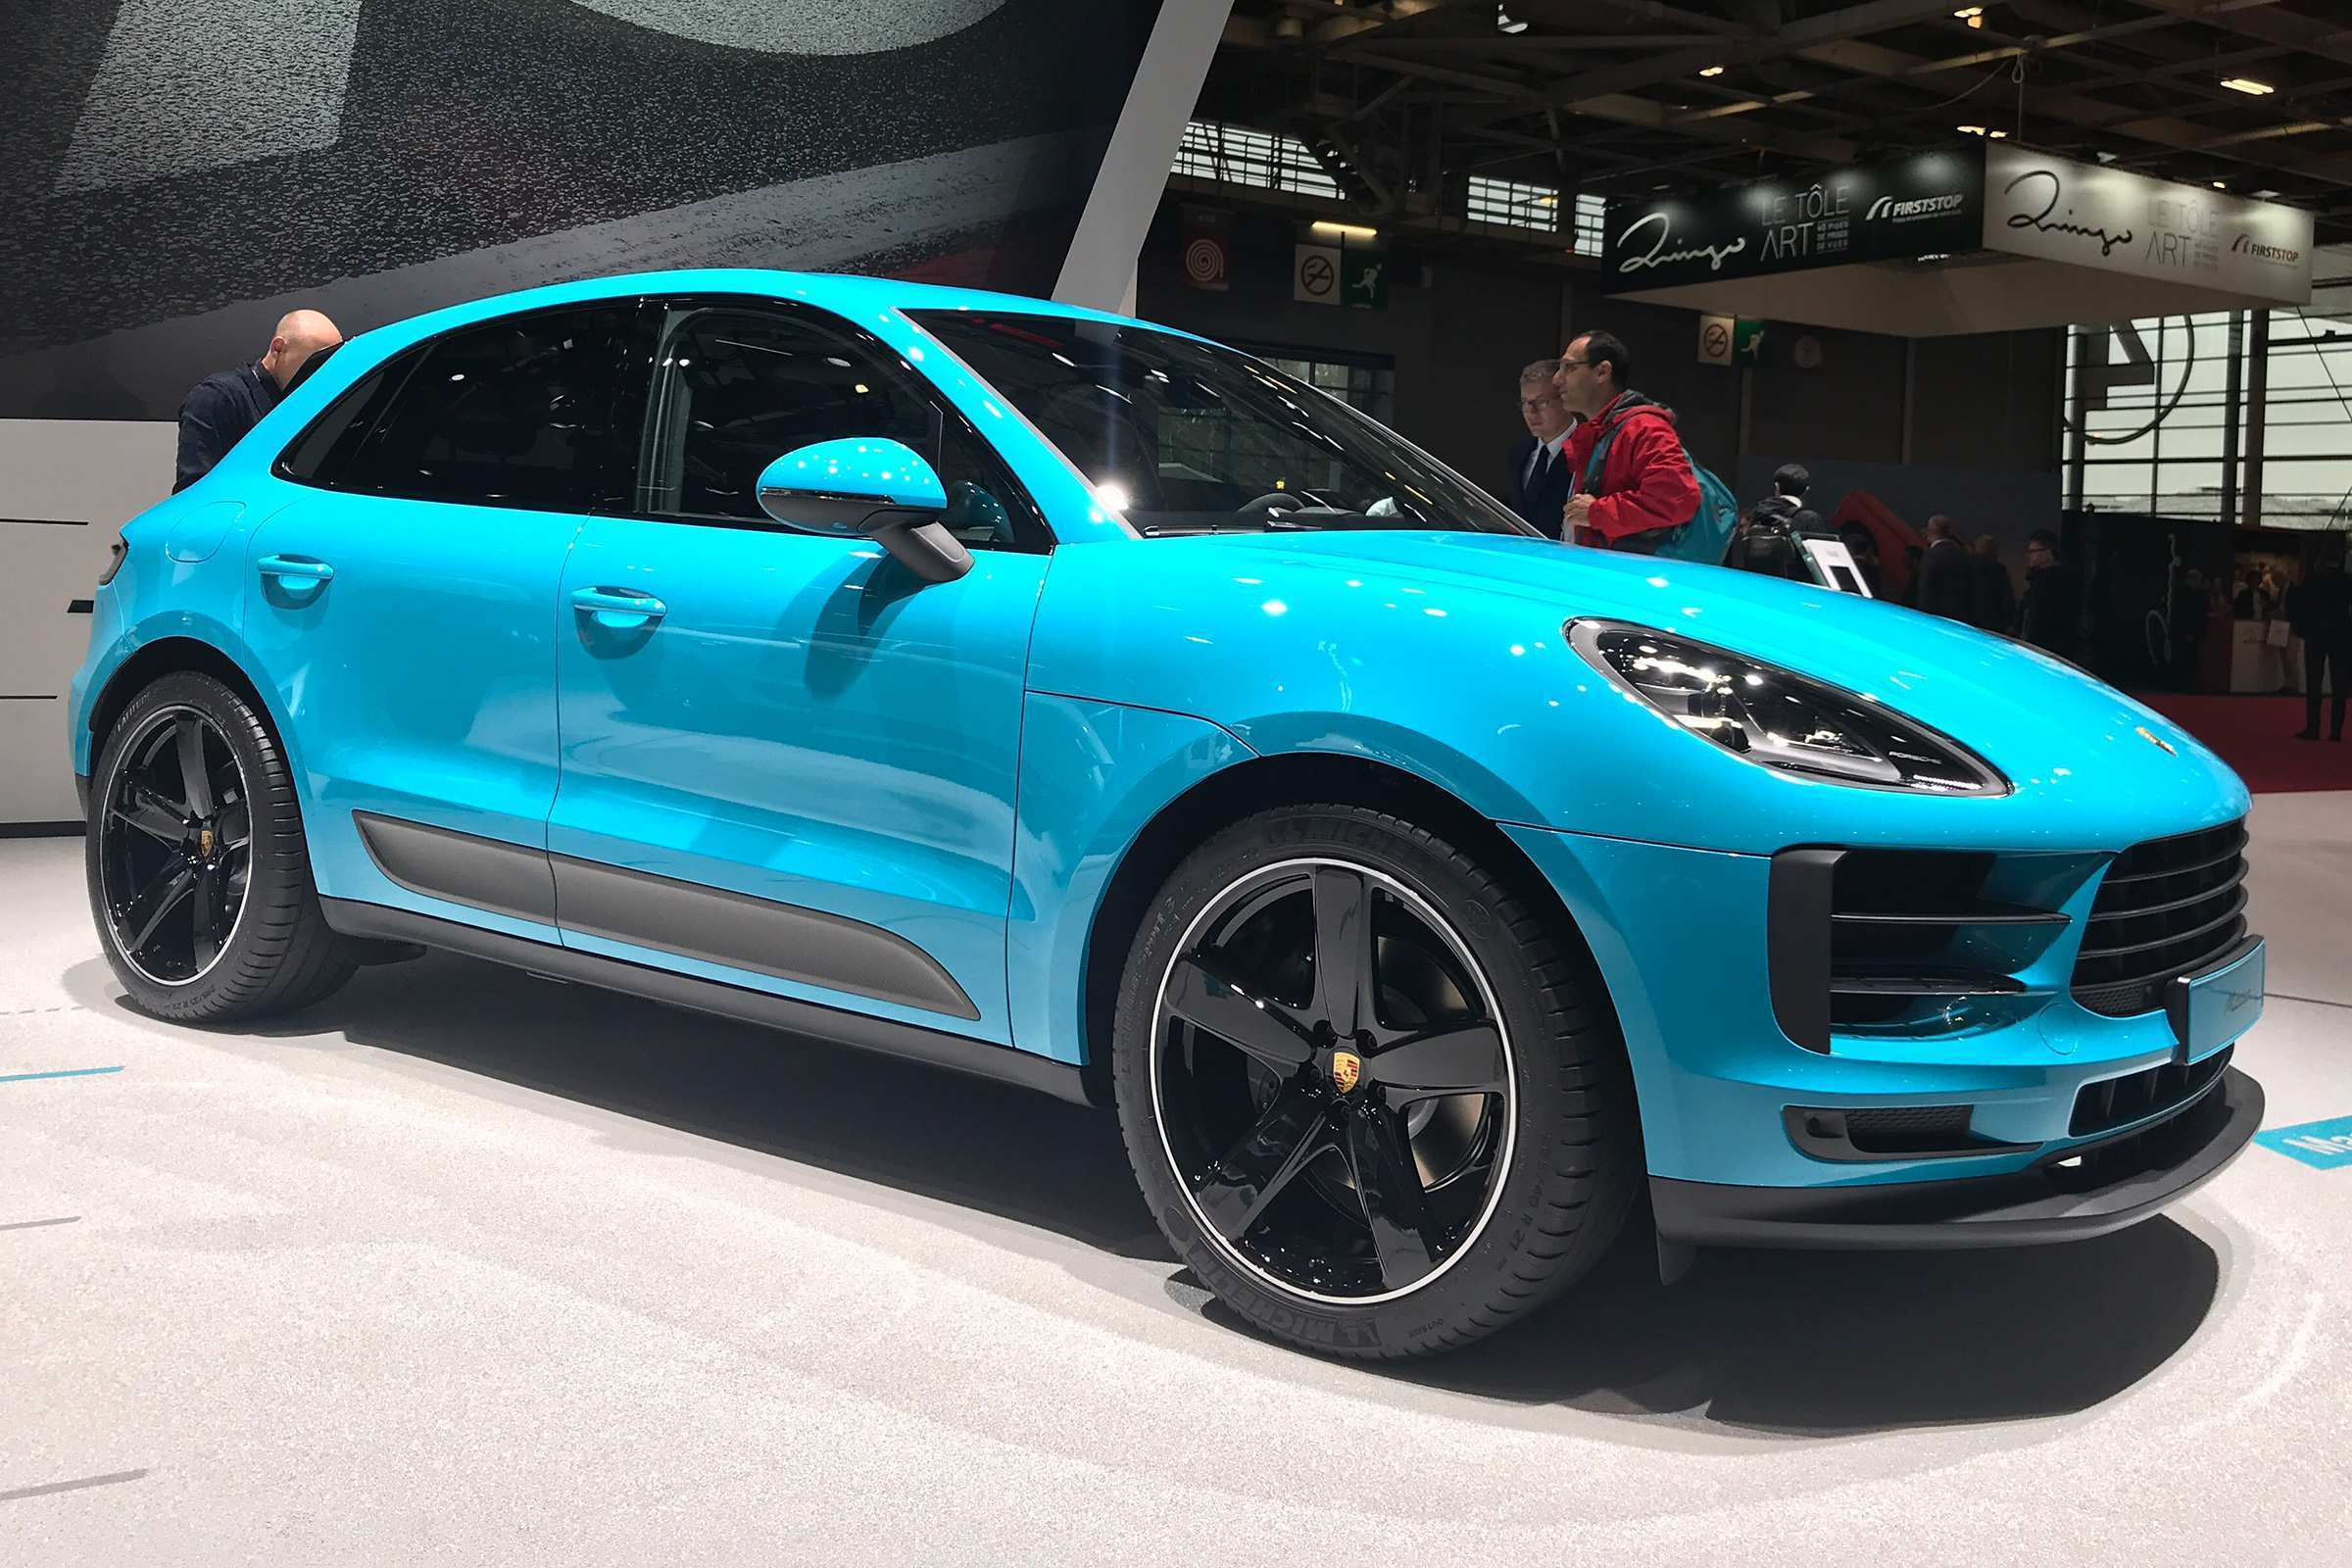 20 Concept of 2019 Porsche Macan Gts Ratings for 2019 Porsche Macan Gts